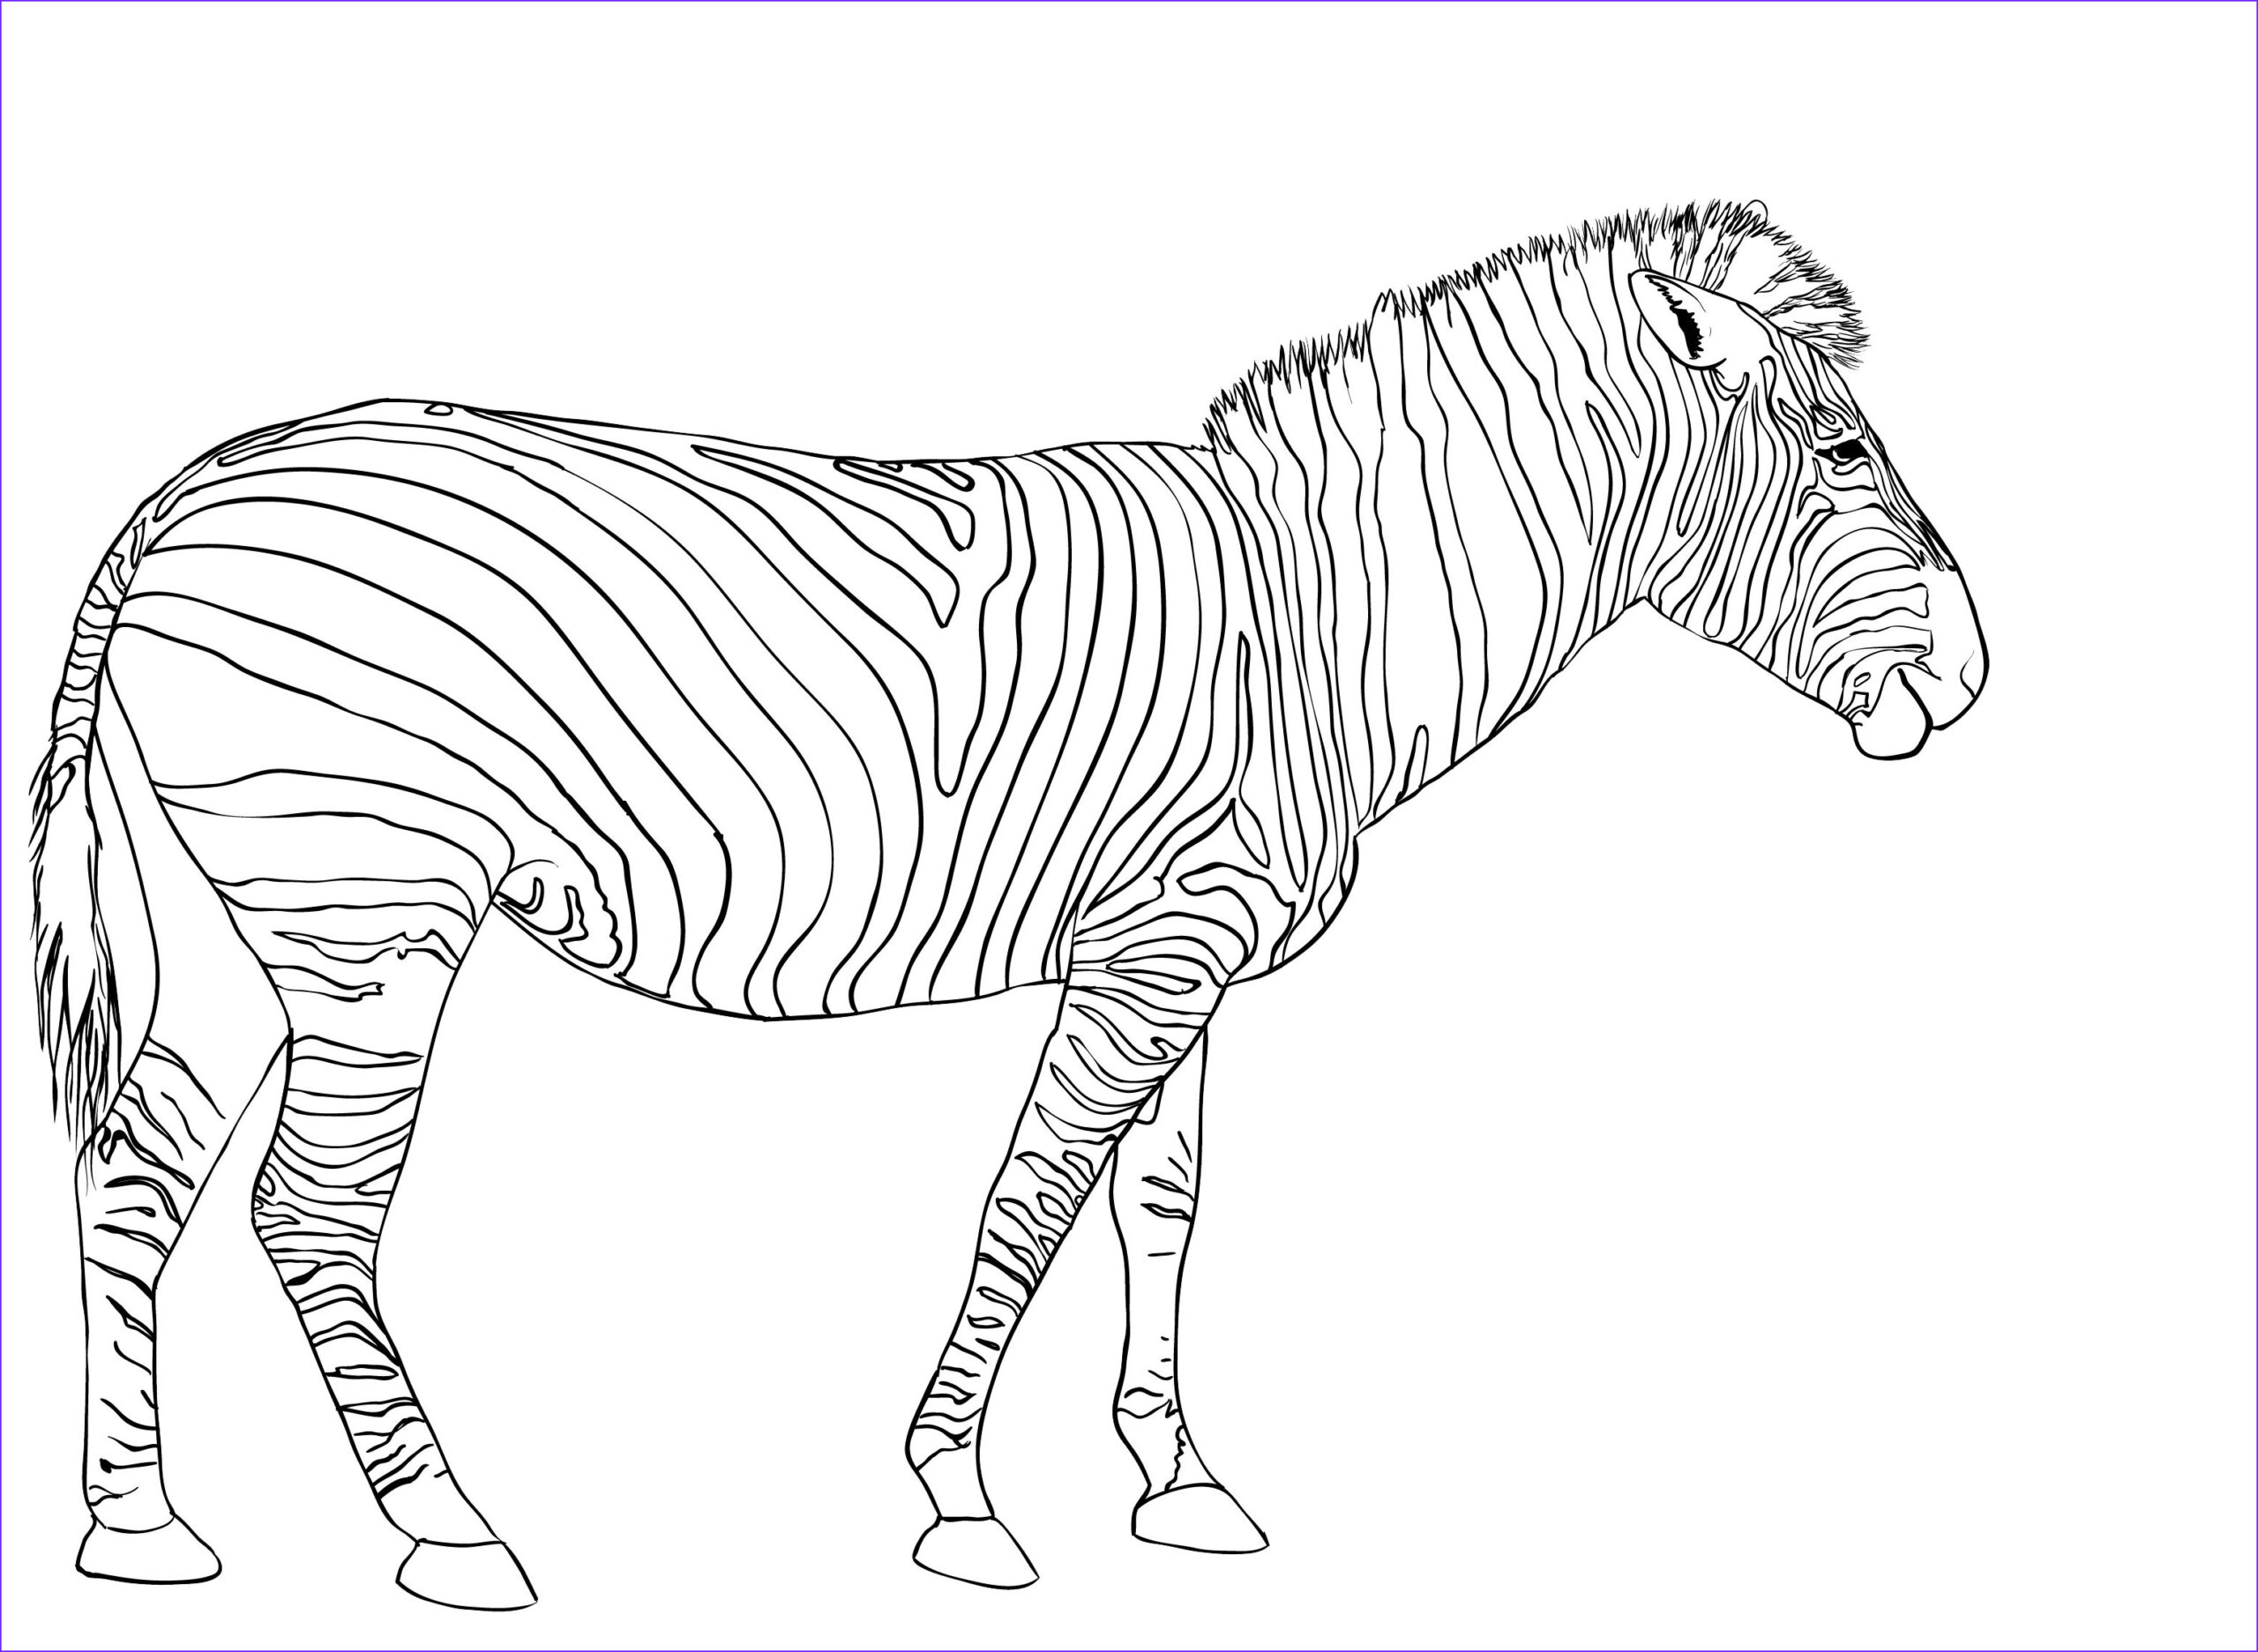 Zebra Coloring Pages Unique Gallery Free Printable Zebra Coloring Pages for Kids